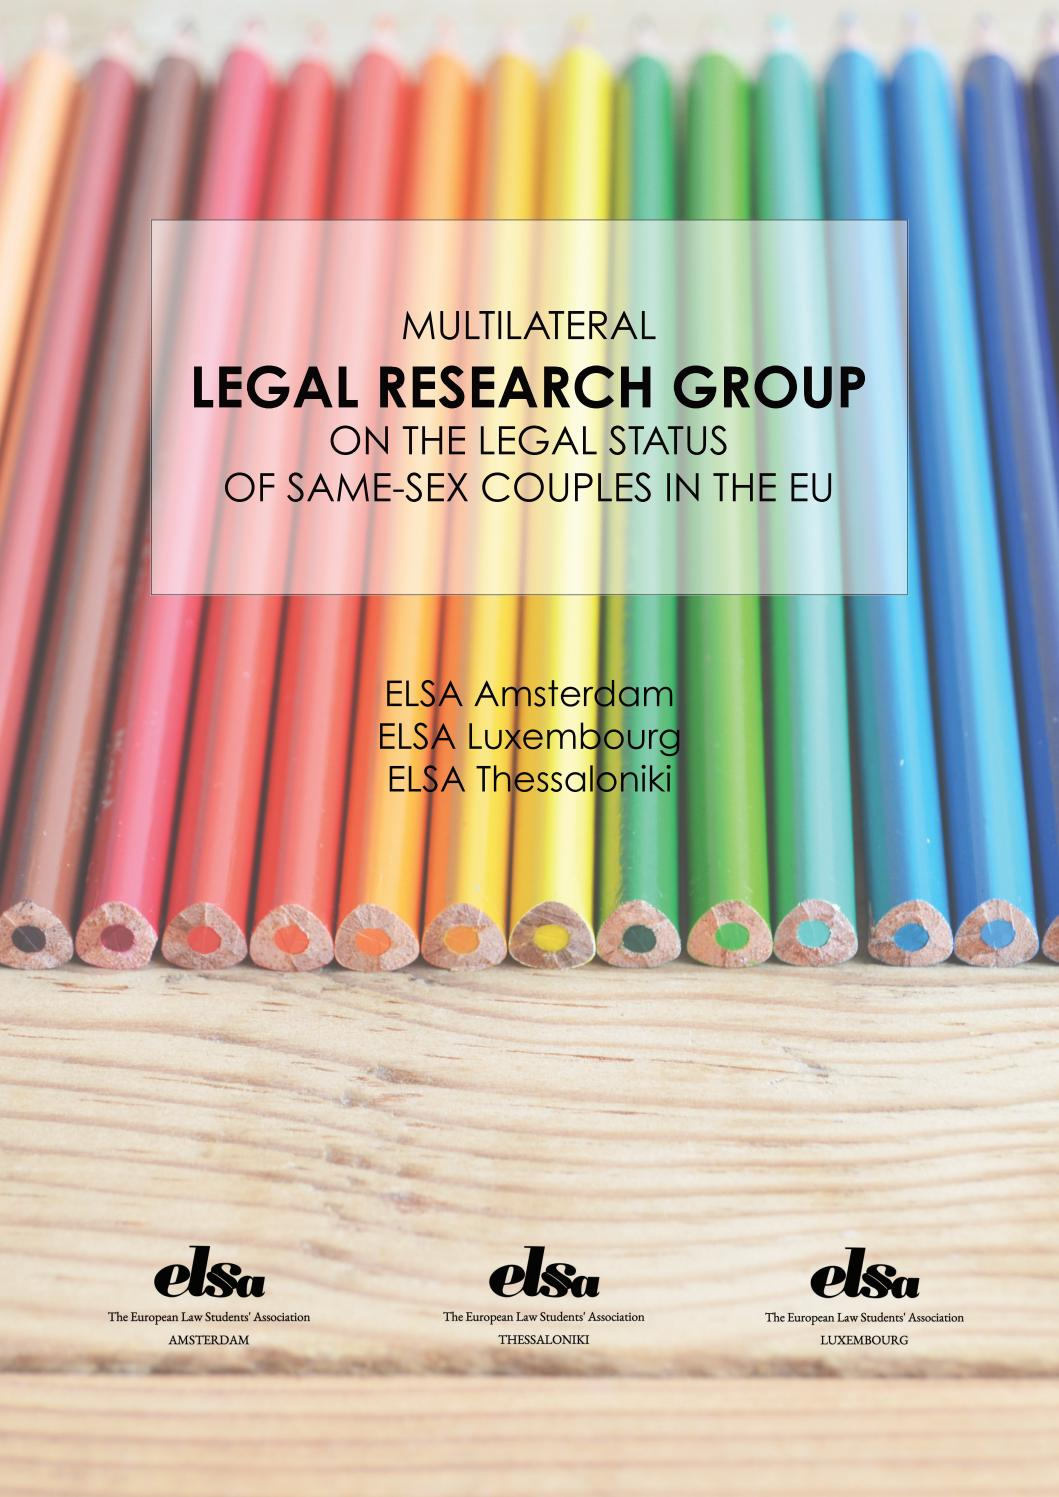 Multilateral Legal Research Group on the Legal Status of Same-Sex